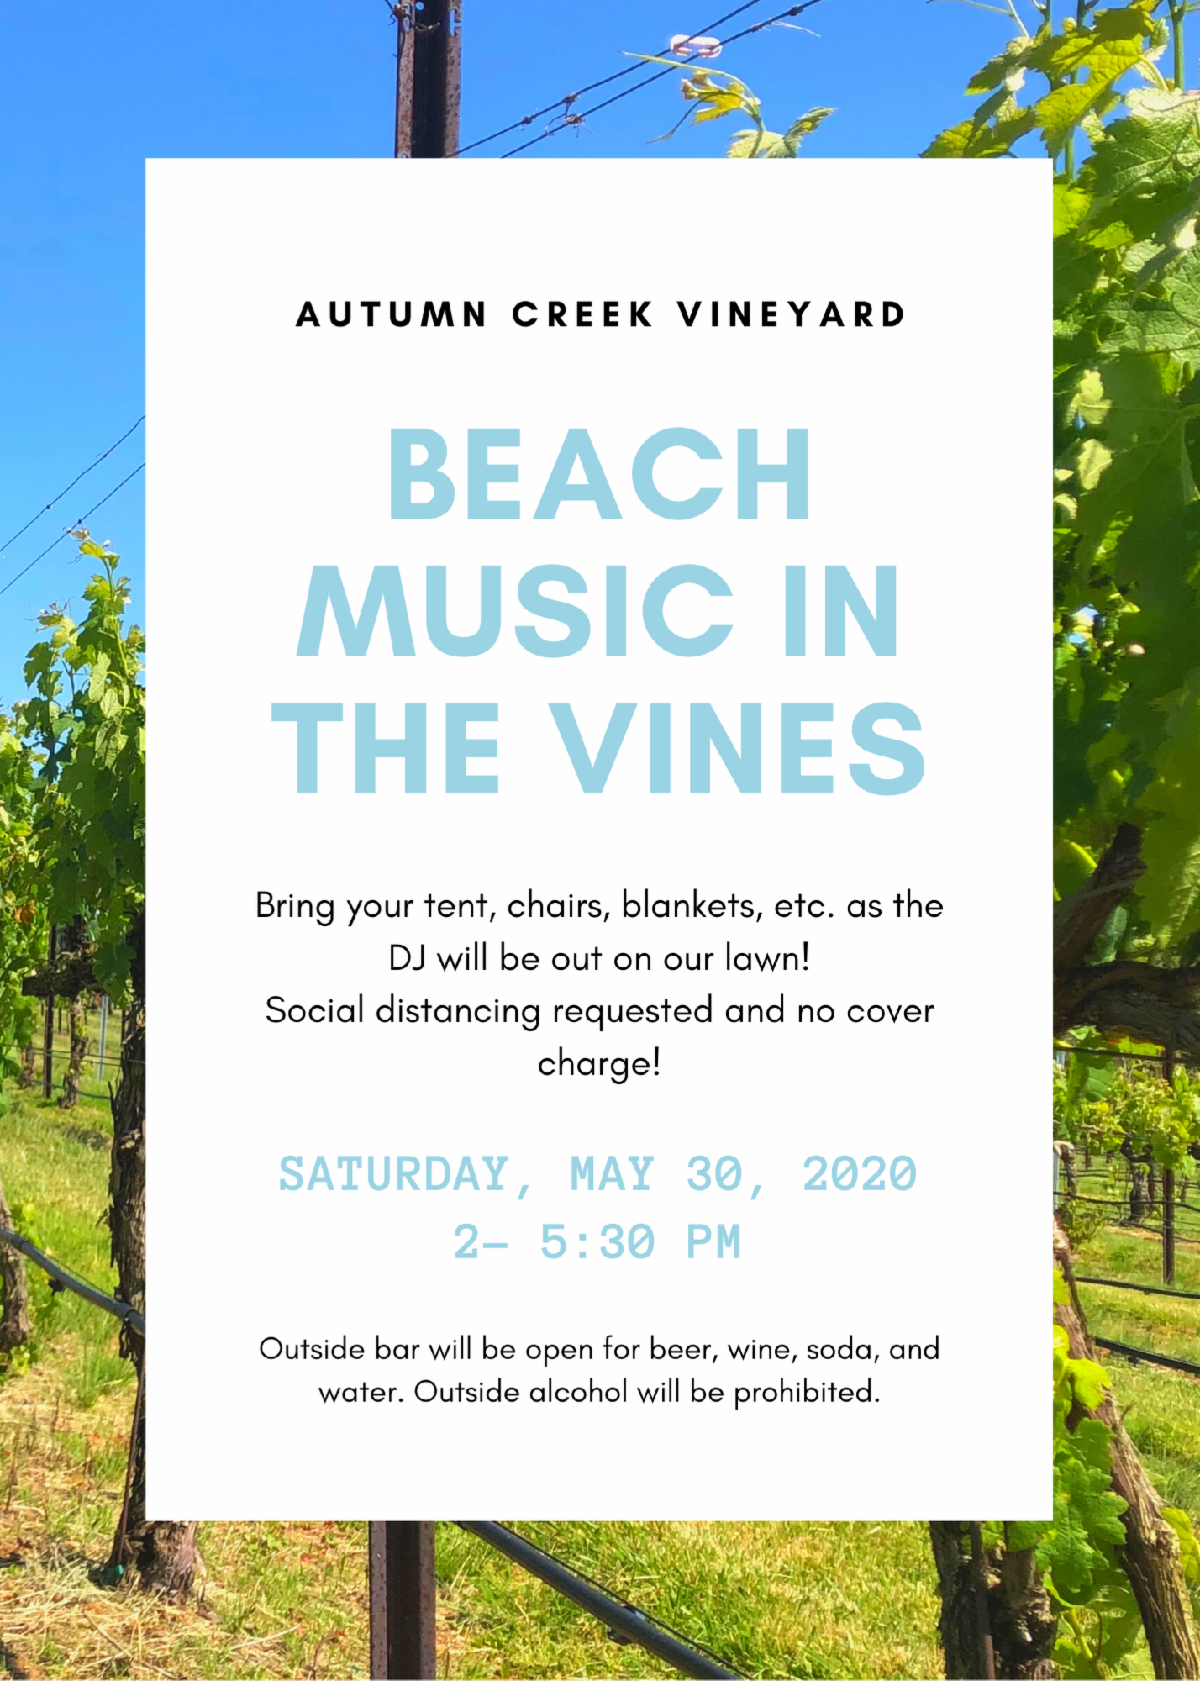 Beach Music in the Vines!